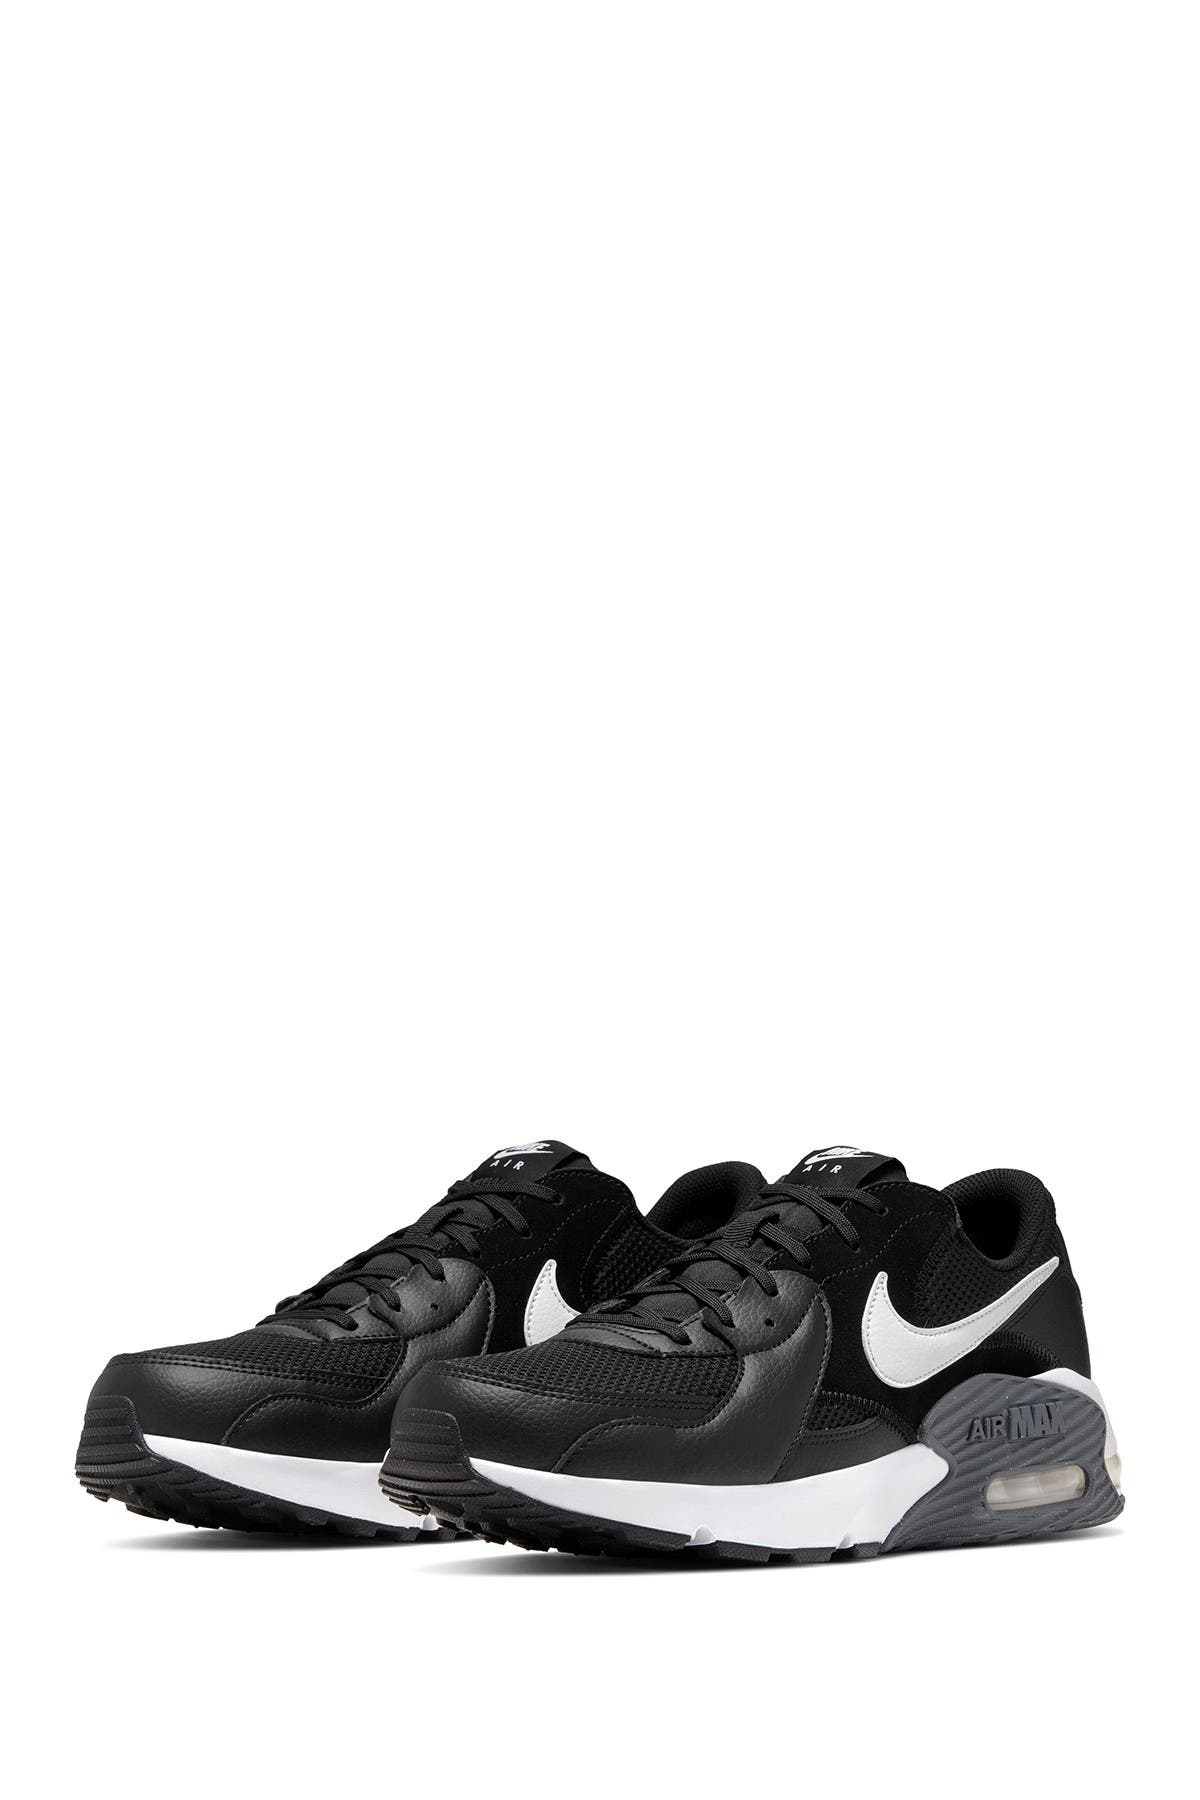 Image of Nike Air Max Excee Sneaker